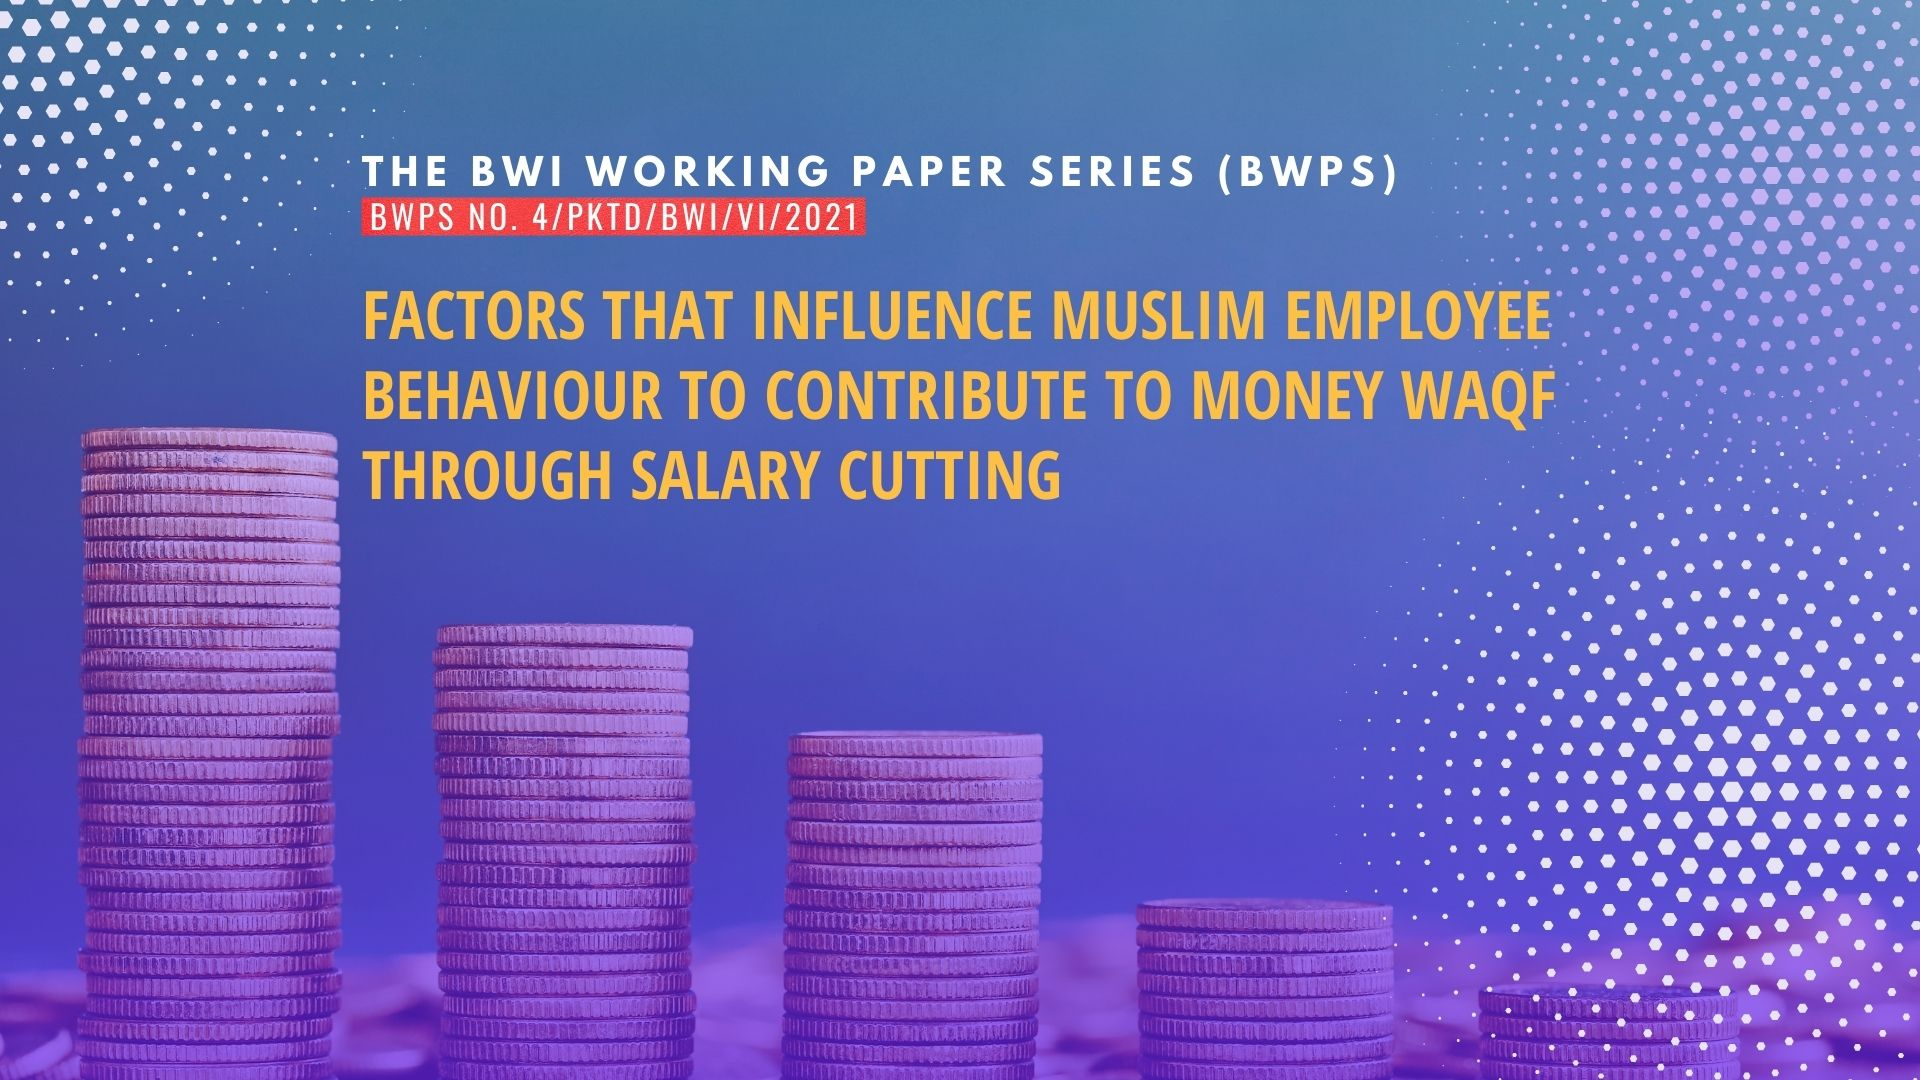 Factors that Influence Muslim Employee Behaviour to Contribute to Money Waqf through Salary Cutting – BWPS No. 4 2021 money waqf - BWPS No - Factors that Influence Muslim Employee Behaviour to Contribute to Money Waqf through Salary Cutting – BWPS No. 4 2021